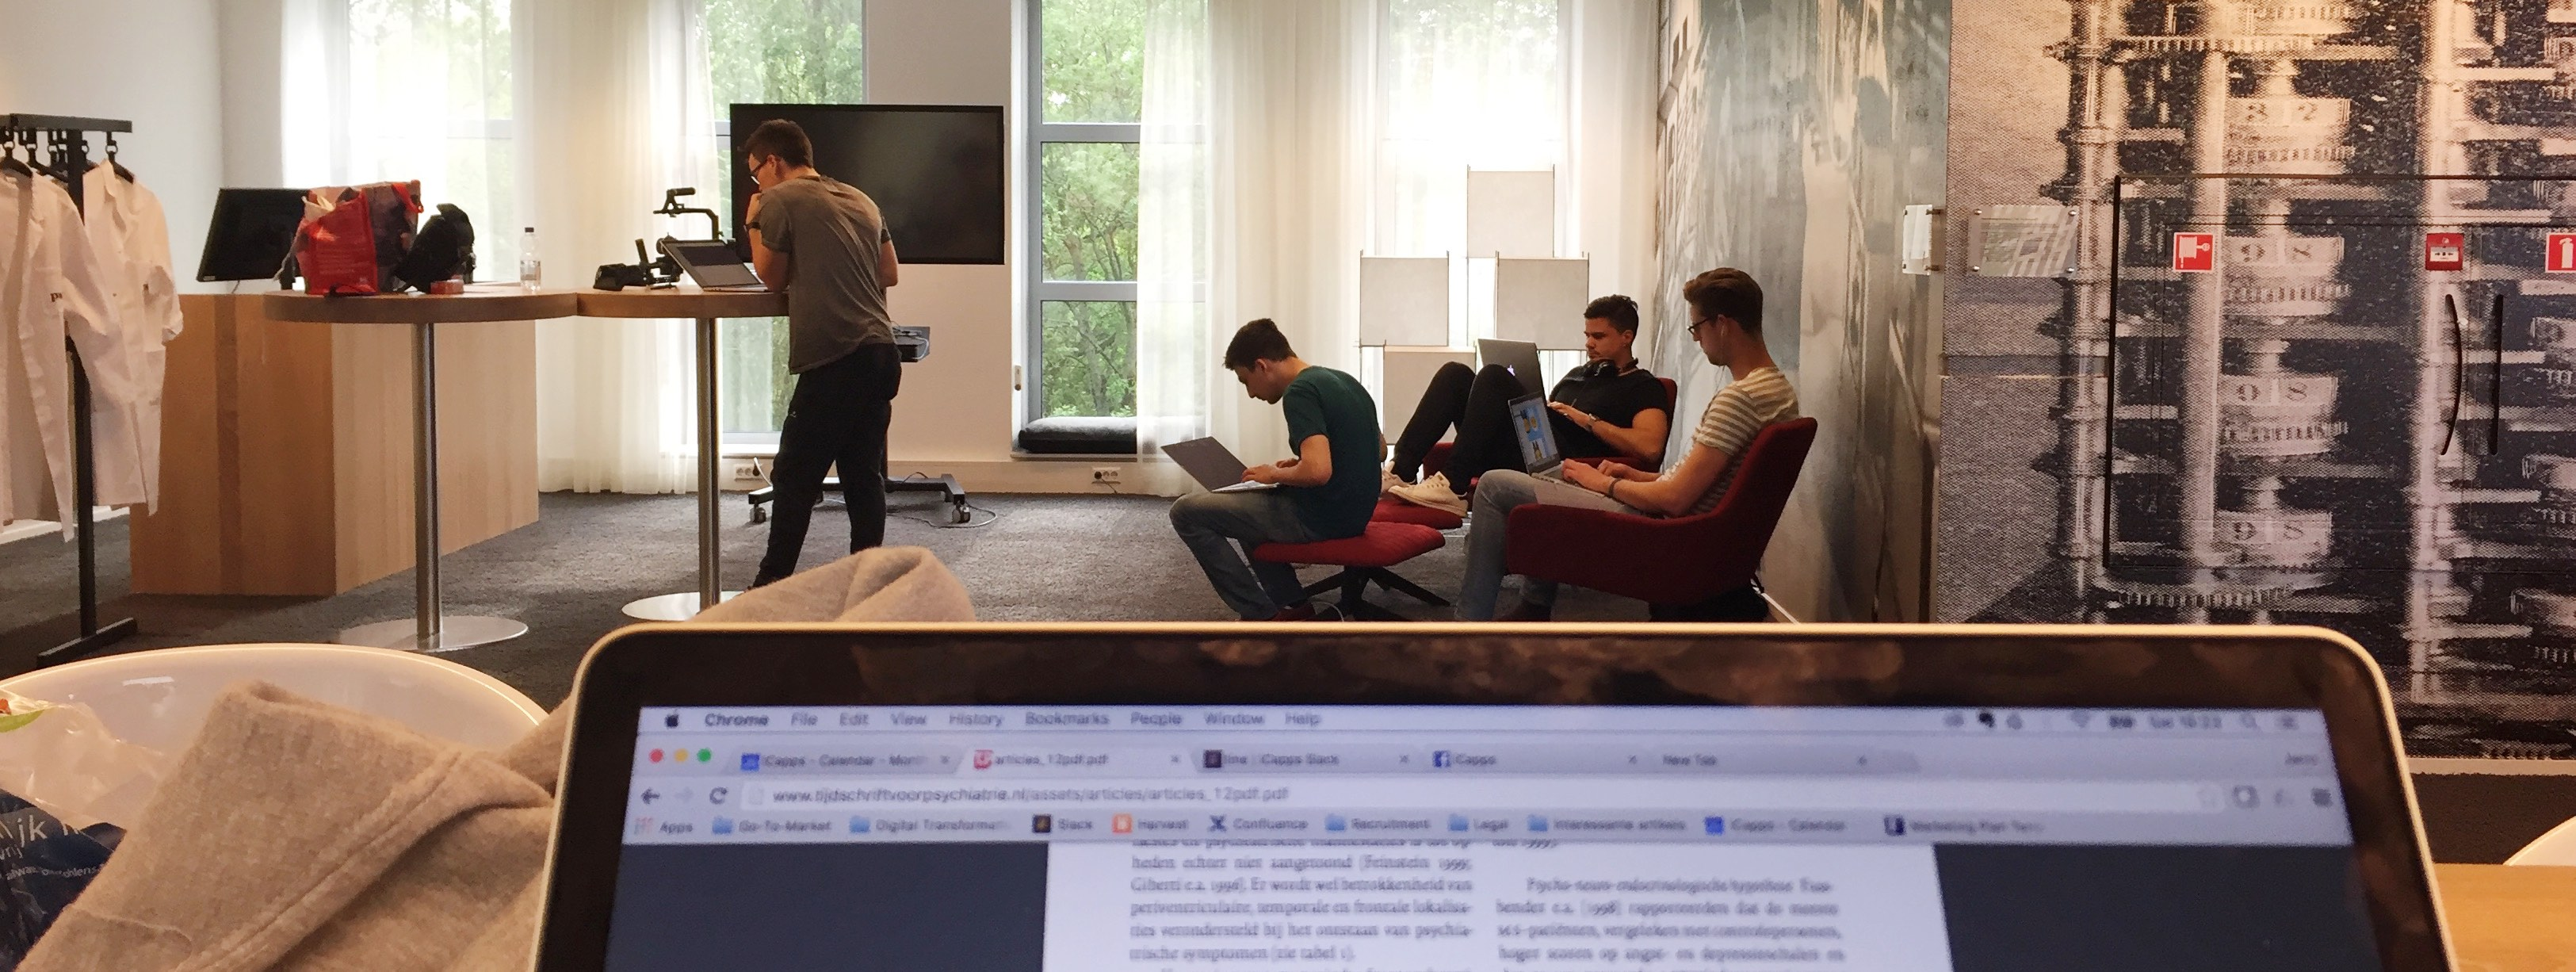 Battling MS with a Hackathon to create an innovative digital product